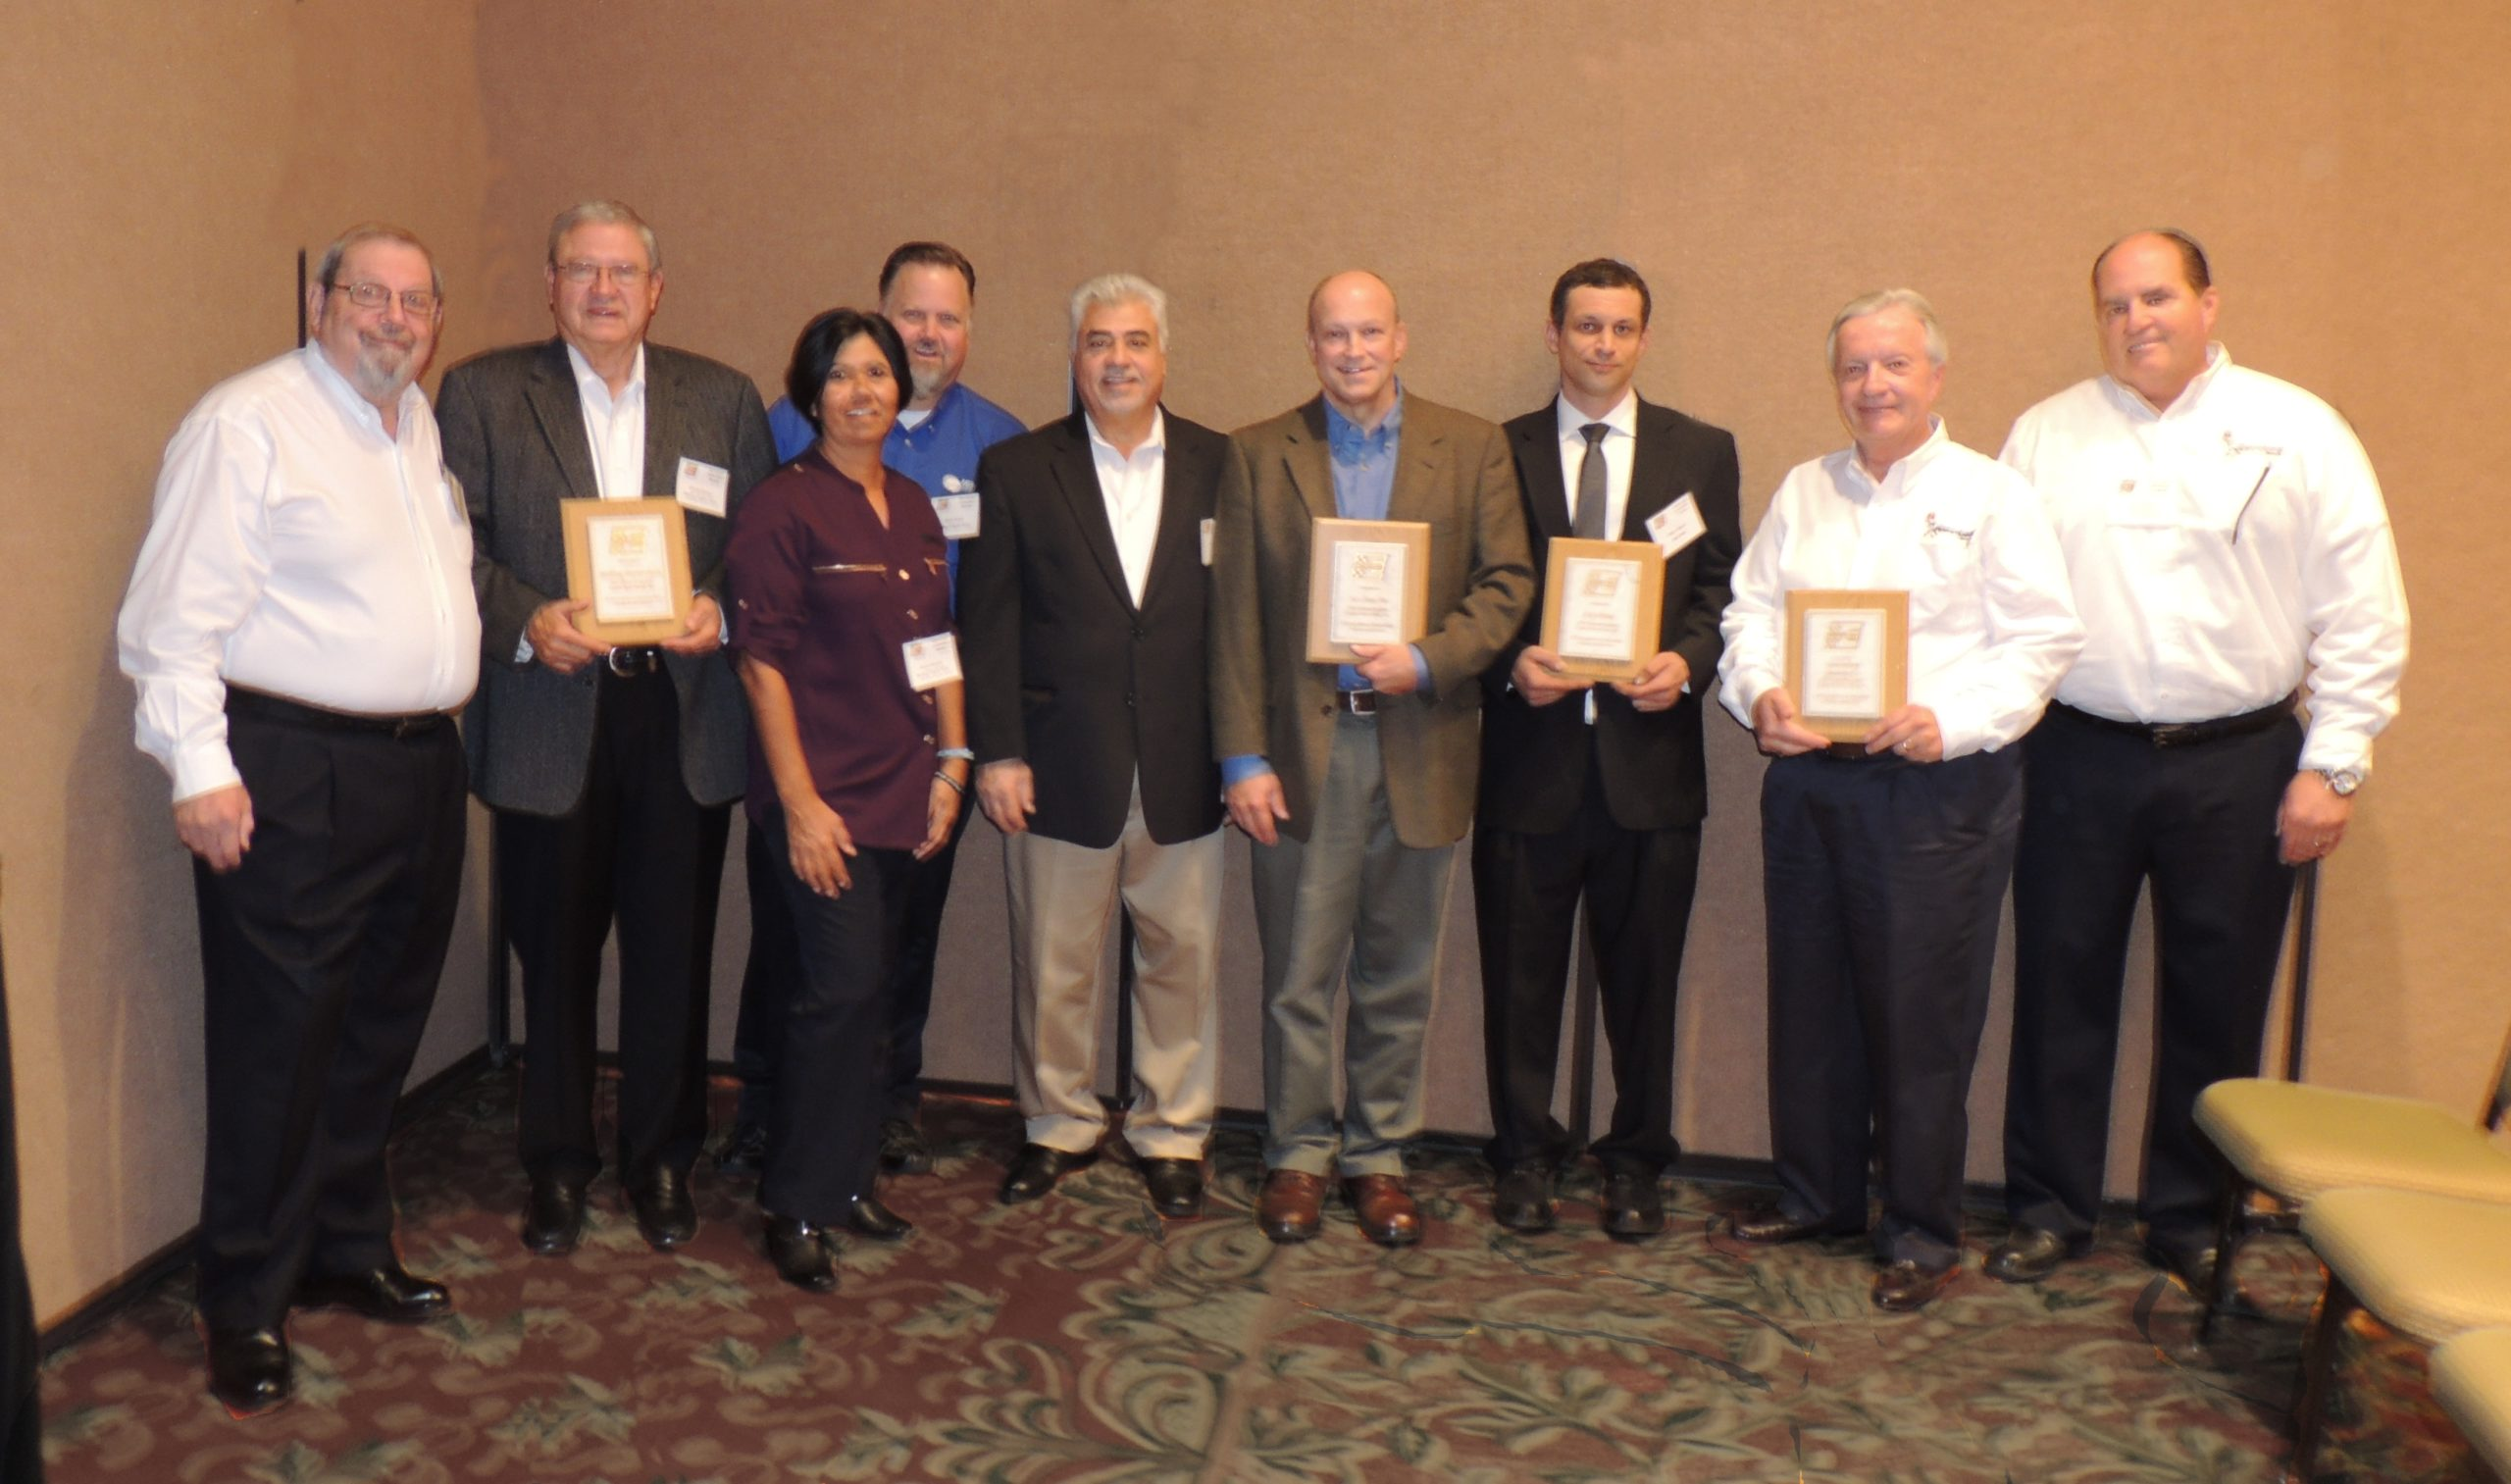 Engine Pro honored top suppliers at a recent shareholder meeting. Pictured left to right: Don Weber, Engine Parts Group; Bill Mc